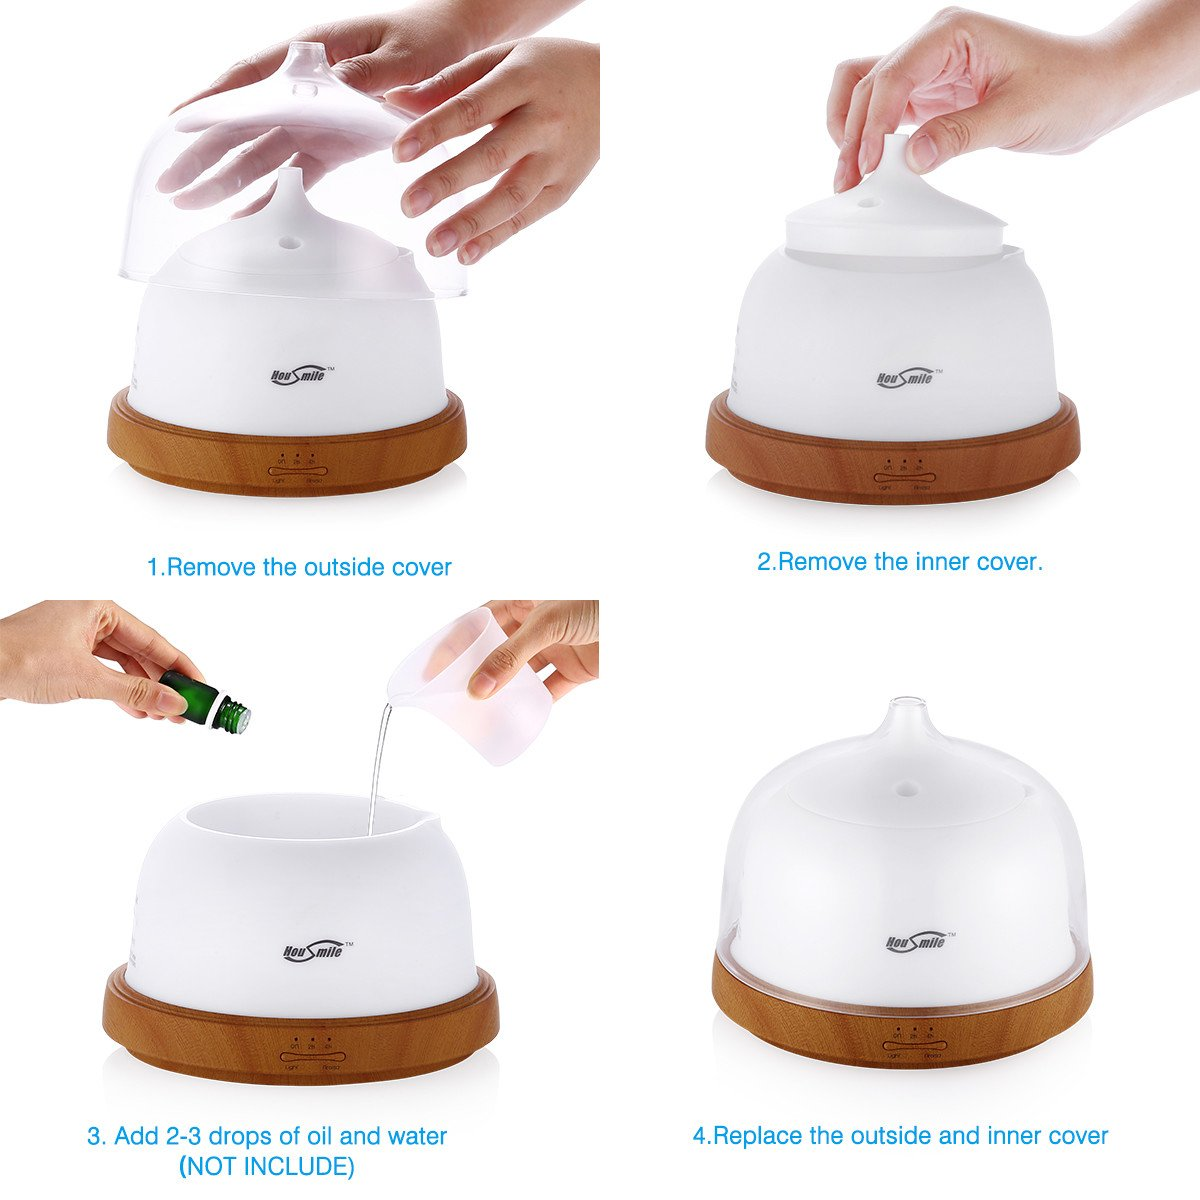 Housmile Aromatherapy Essential Oil Diffuser 200ml Aroma Cool Mist Humidifier with Timer Waterless Auto Shut-off and 7 Color LED Night Lights Change